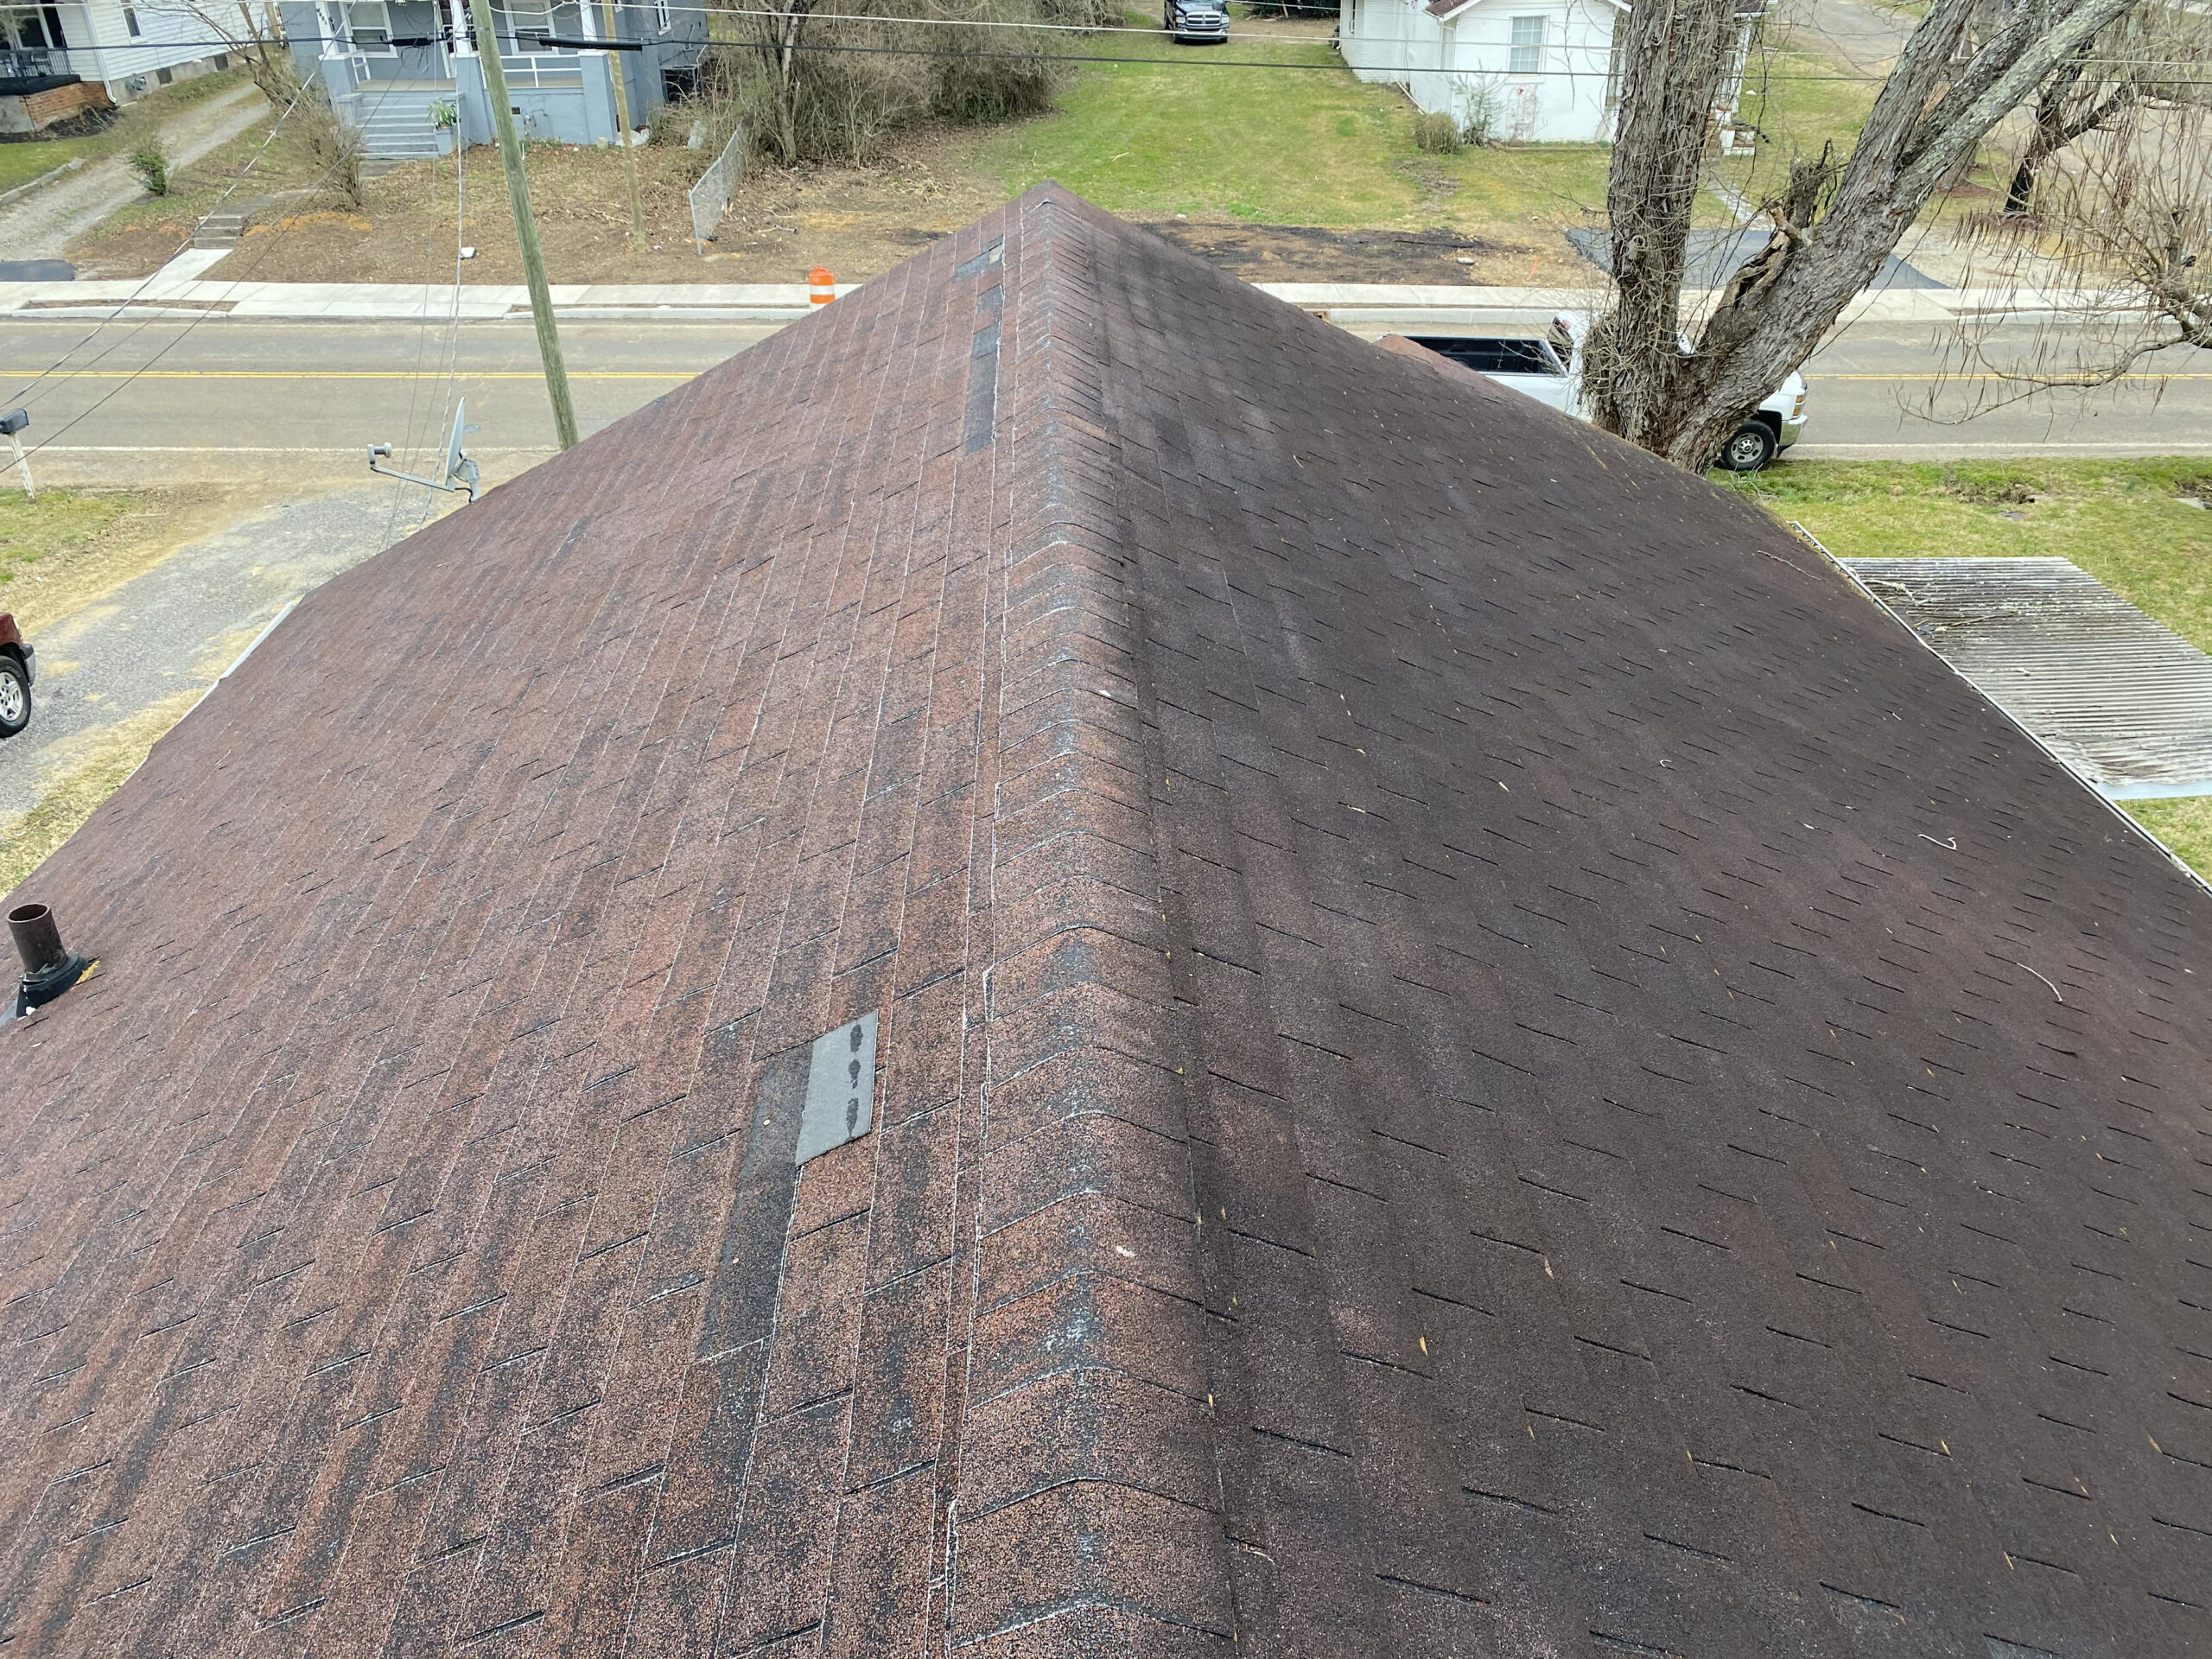 This is a picture of an old brown roof with missing shingles